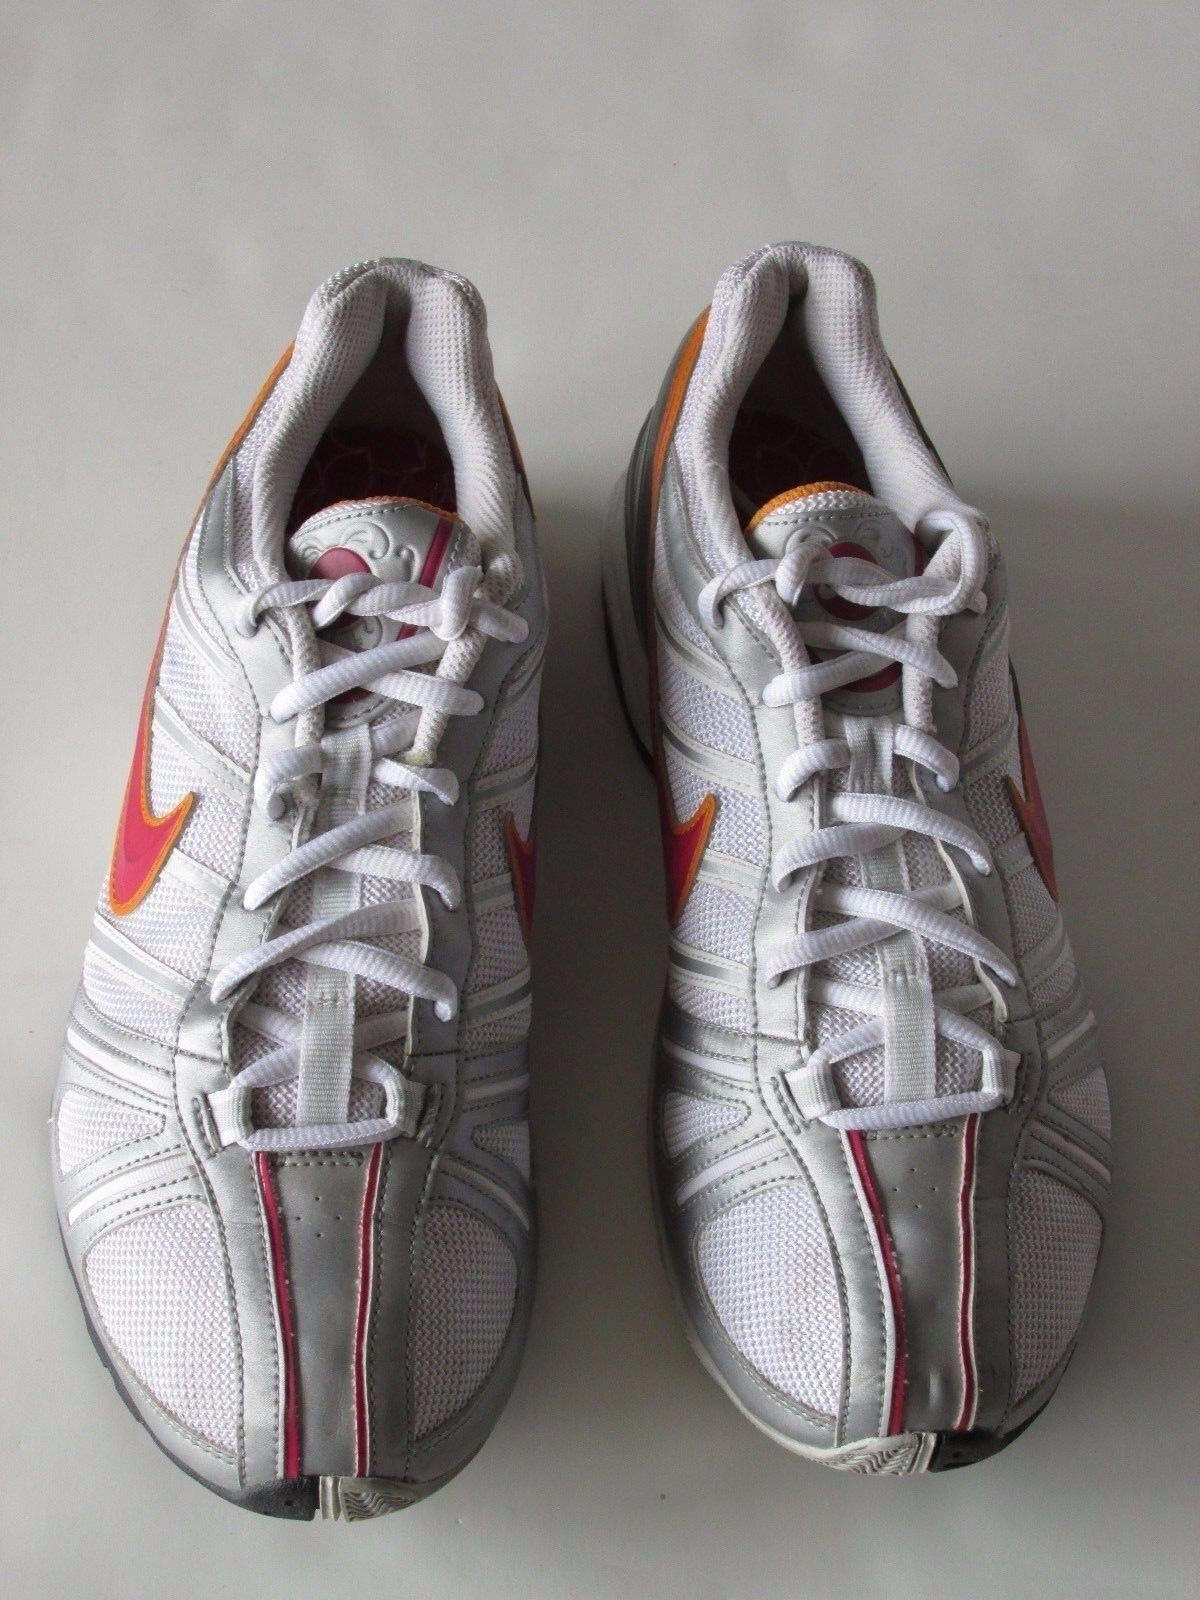 sale retailer b35e9 c0900 ... Nike Air Max White Red Red Red Silver Synthetic Mesh Running Shoes  Women s US 9M 64f64a ...